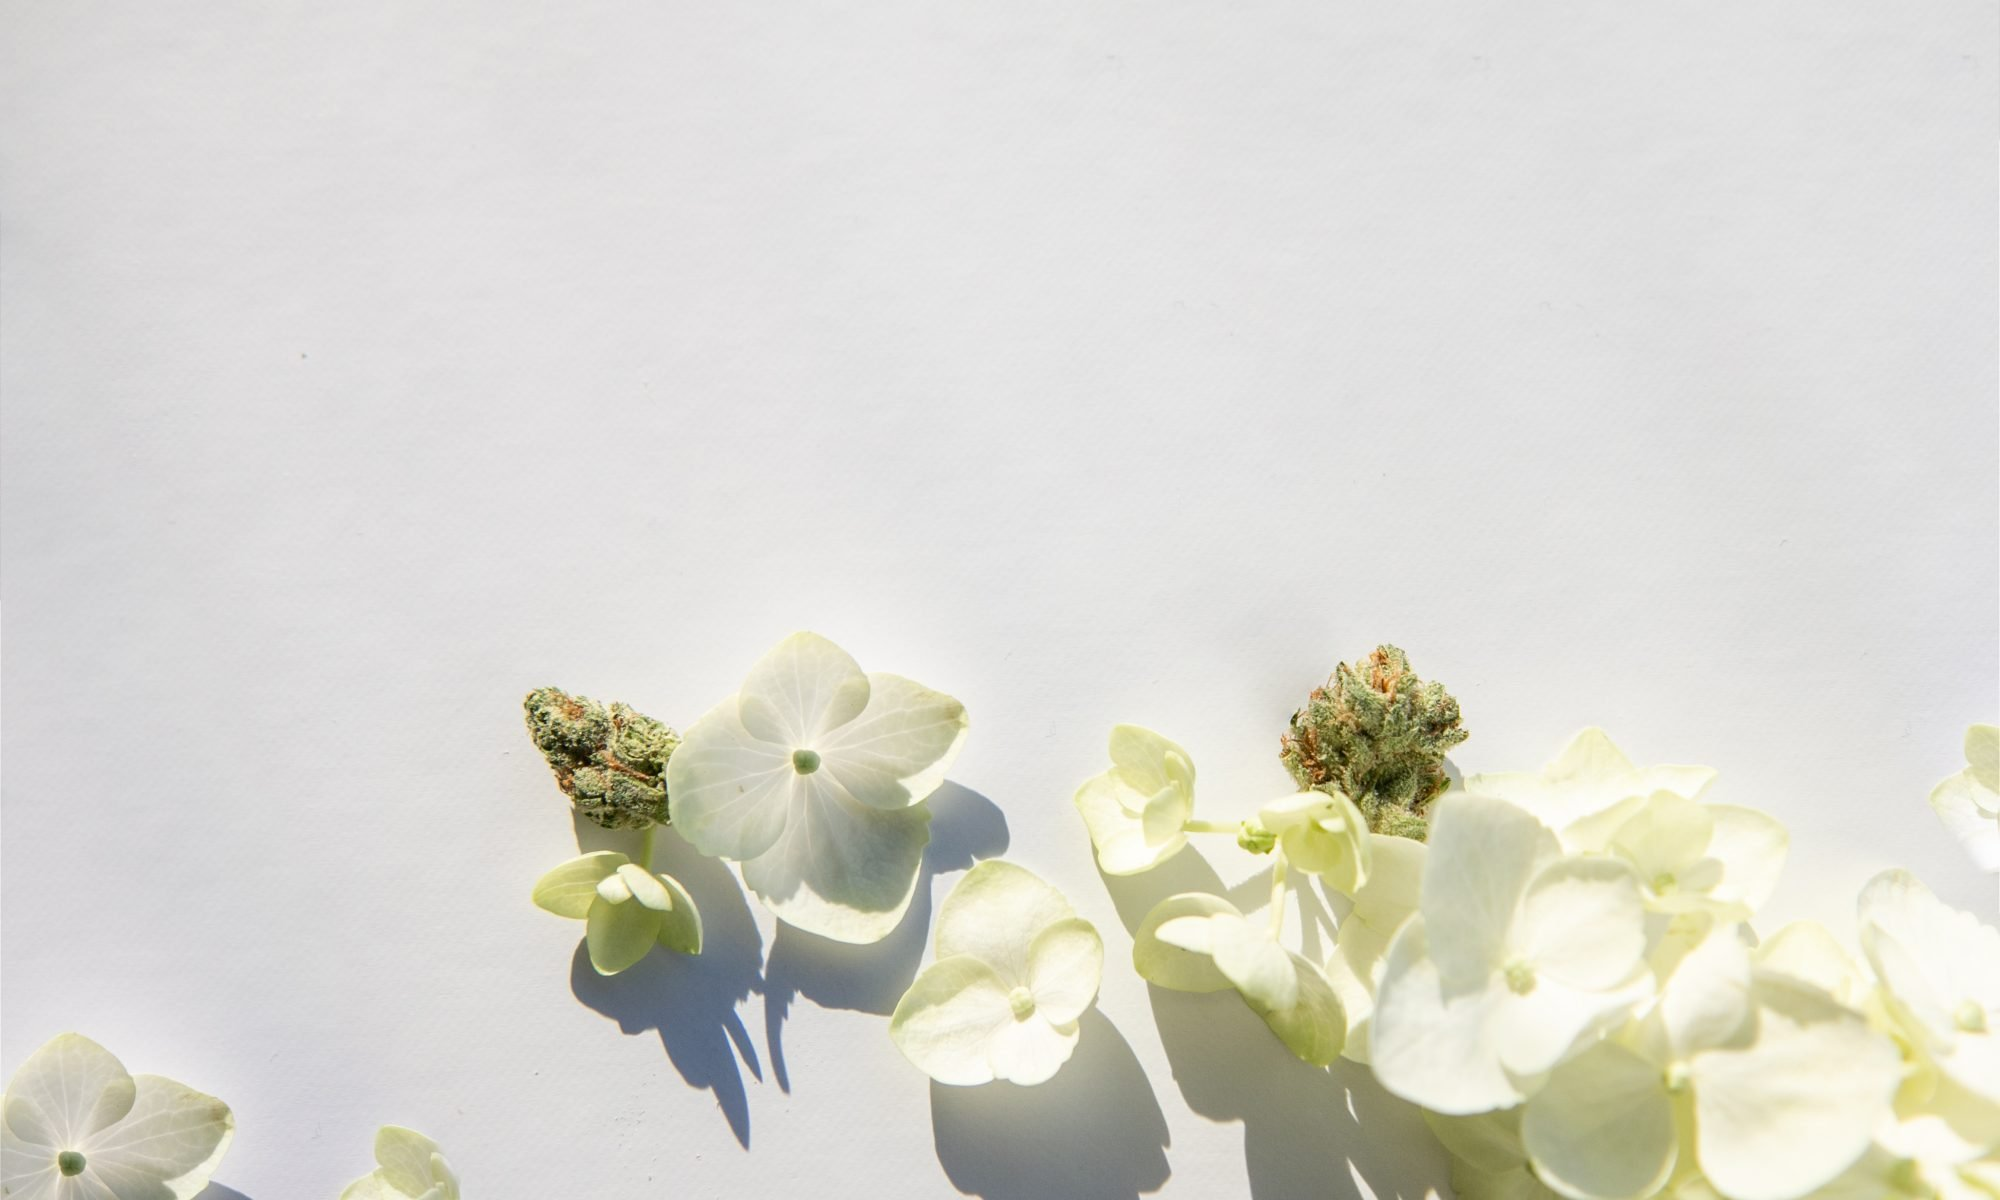 Close,Up,On,White,Hydrangea,Flowers,With,Cannabis,Bud,-